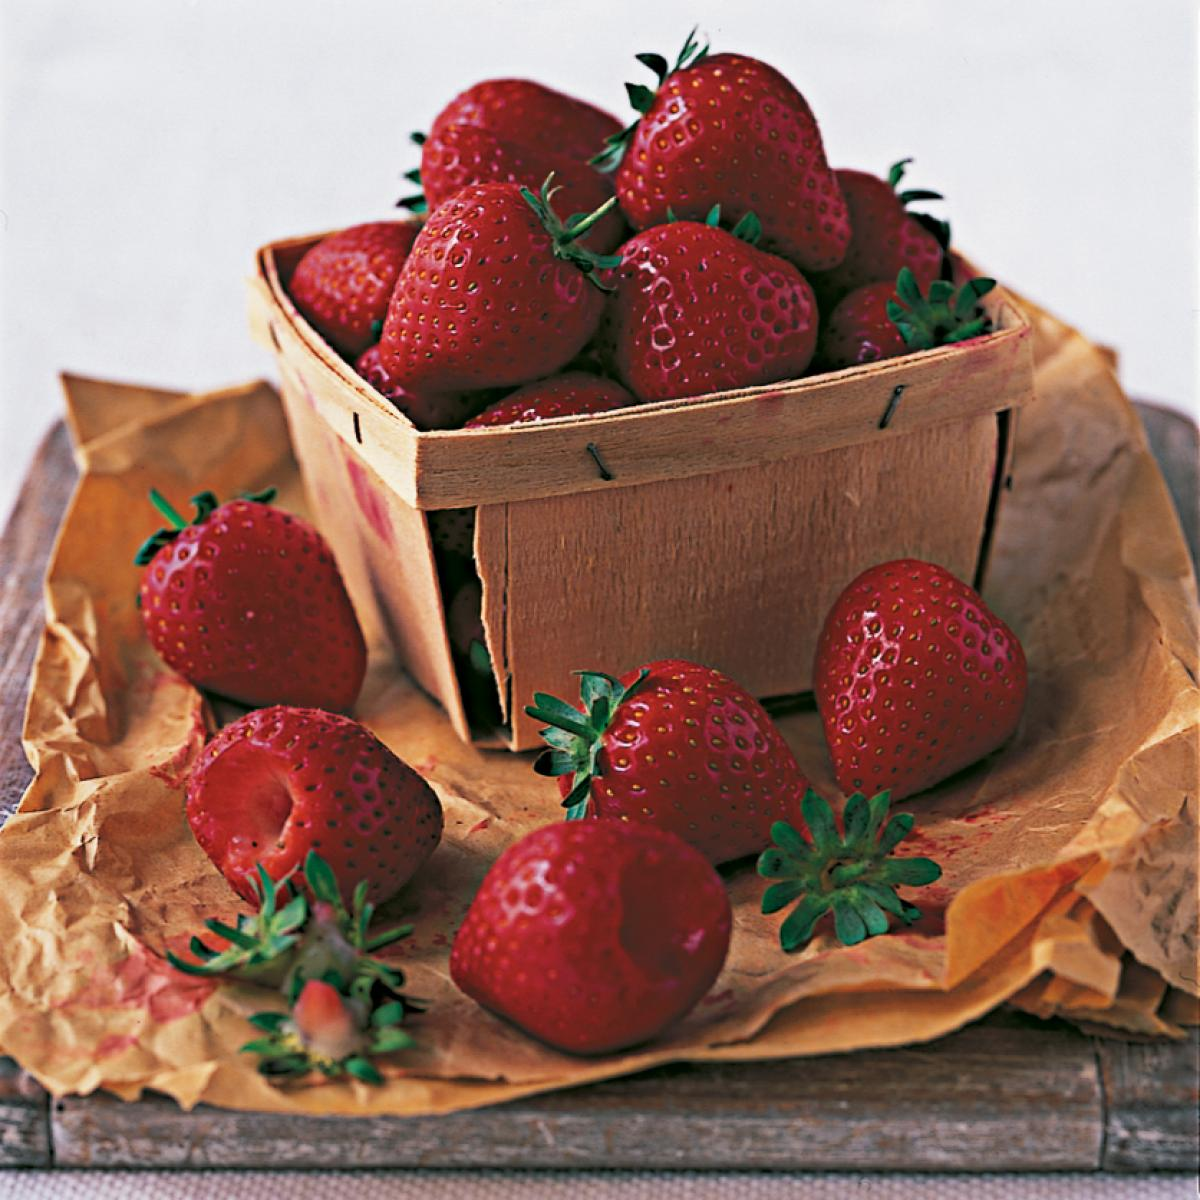 Ingredient puddings strawberries